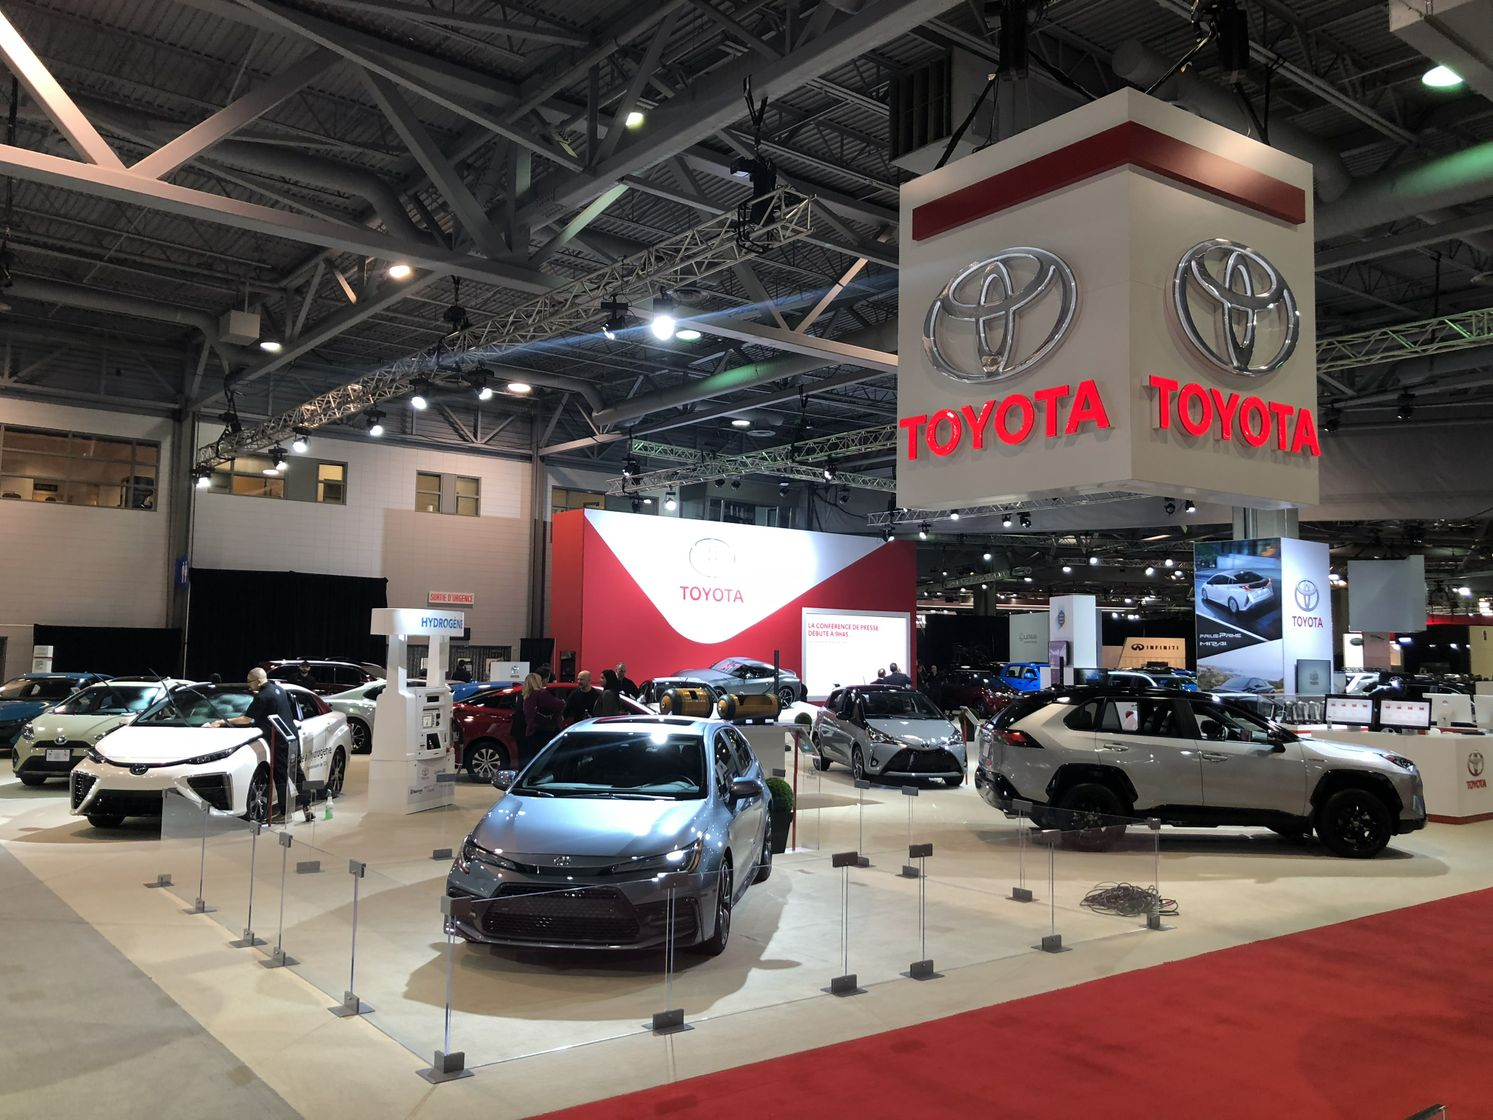 The Toyota Exhibit At The Quebec City International Auto Show